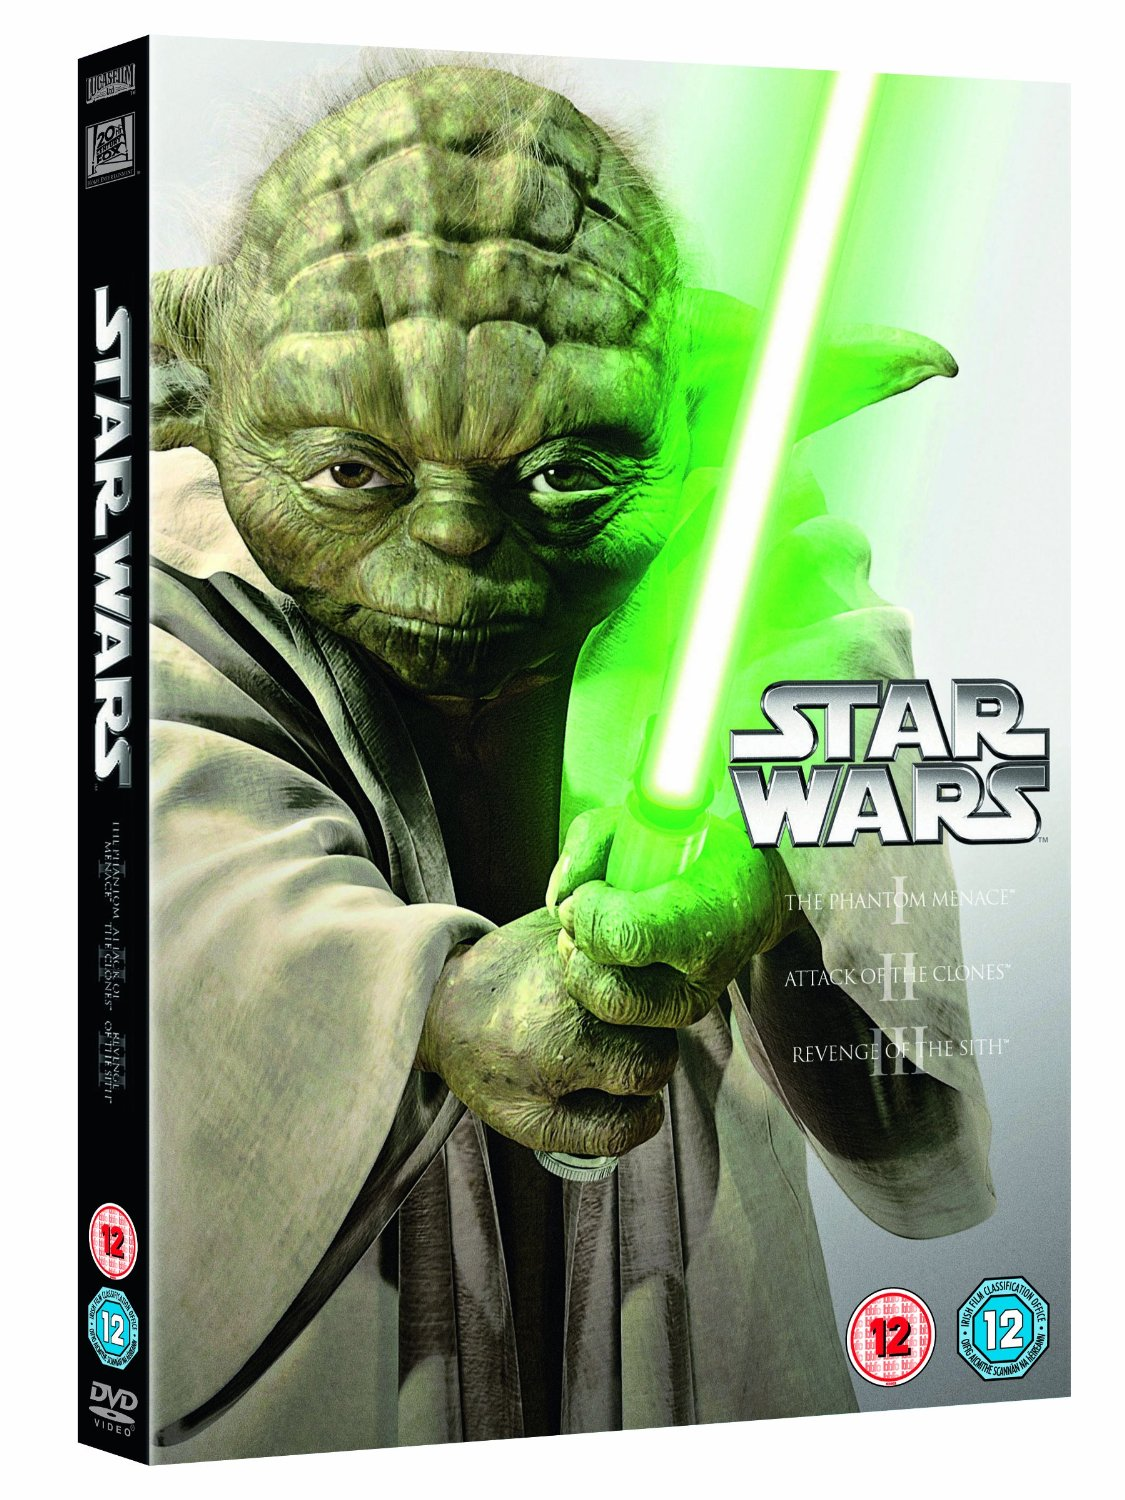 Buy Star Wars: The Prequel Trilogy (Episodes I-III)